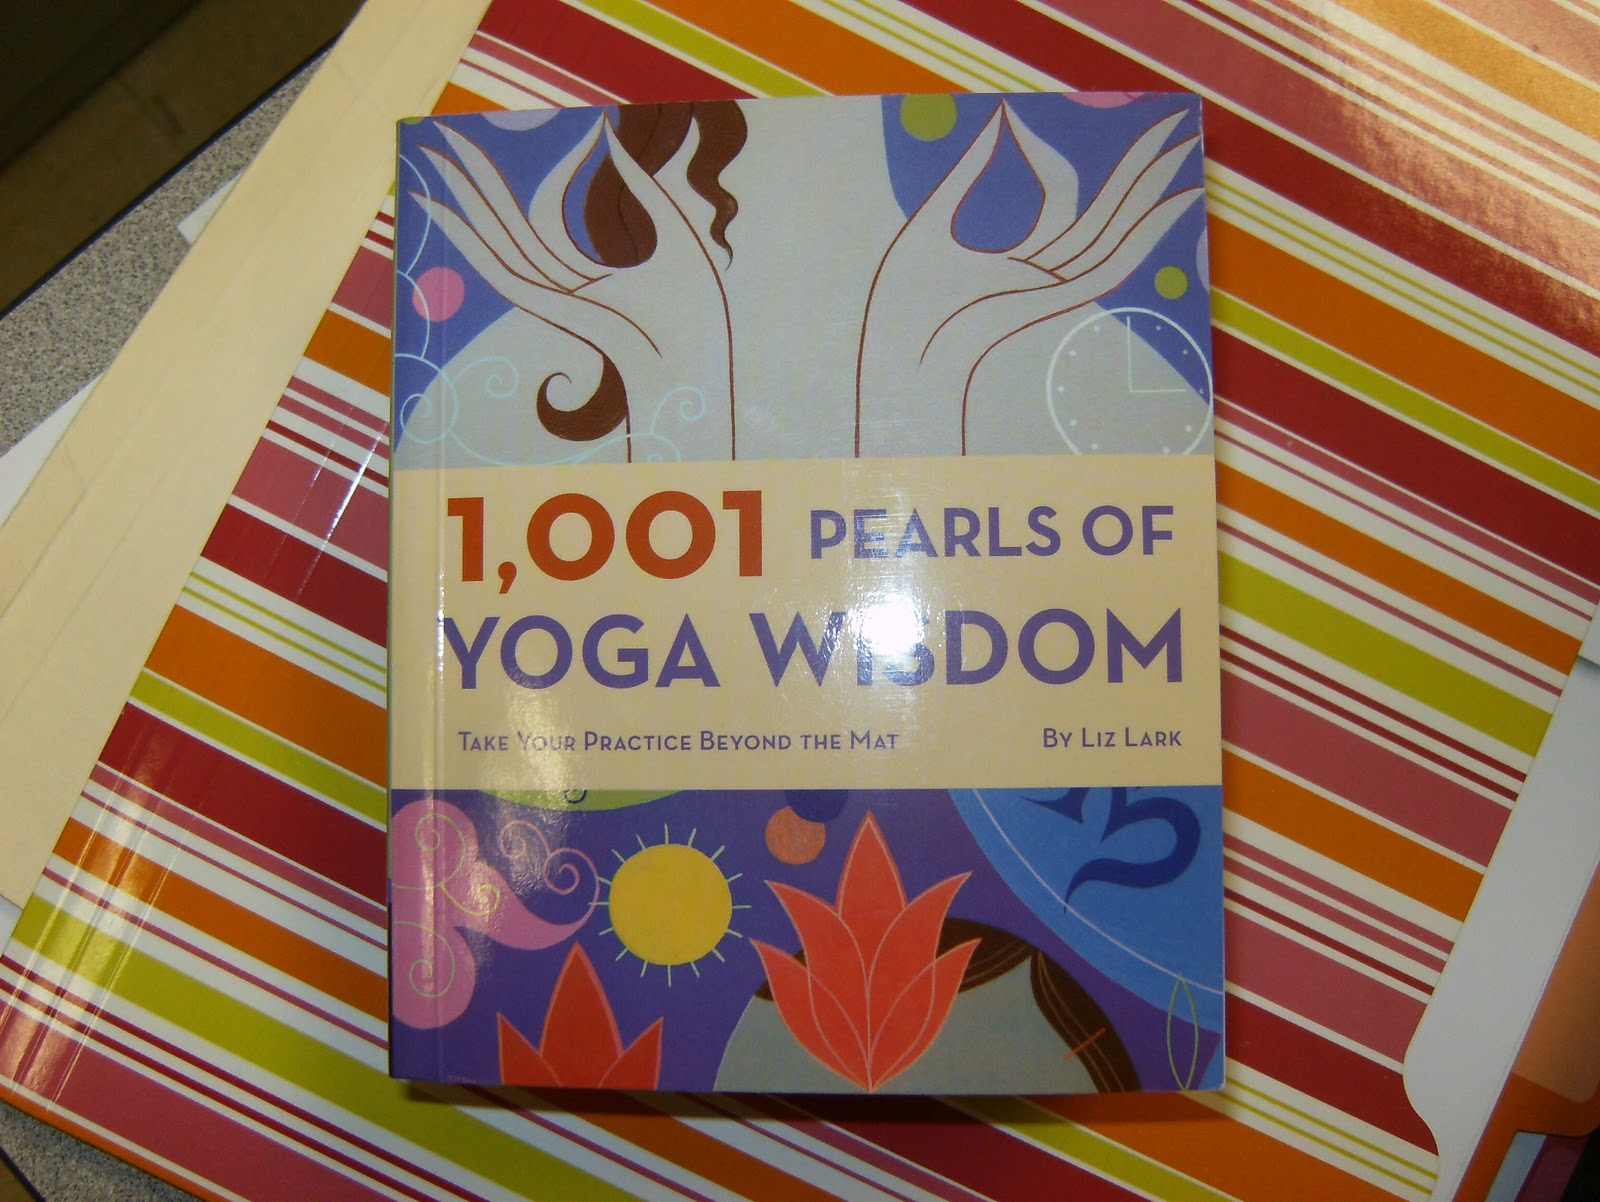 1,001 Pearls of Yoga Wisdom Take your practice beyond the mat by Liz Lark